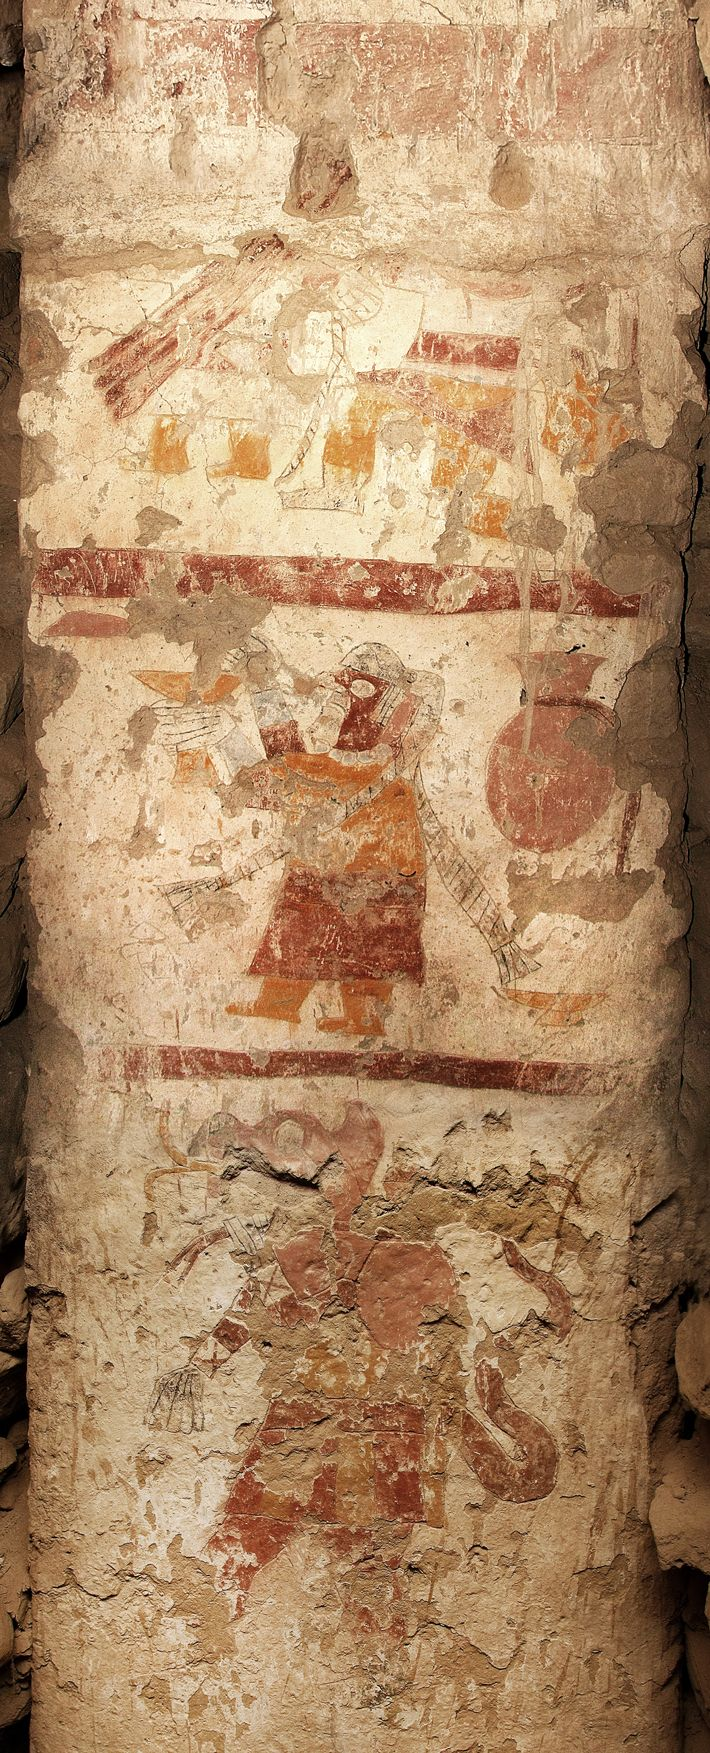 A pillar in the Temple of the Painted Pillars bears three vignettes (top to bottom): a female and a kneeling warrior, a priestess standing in front of a large, red jar, lifting a yellow goblet, and a zoomorphic figure composed of a human, feline, or fox with serpentine features.